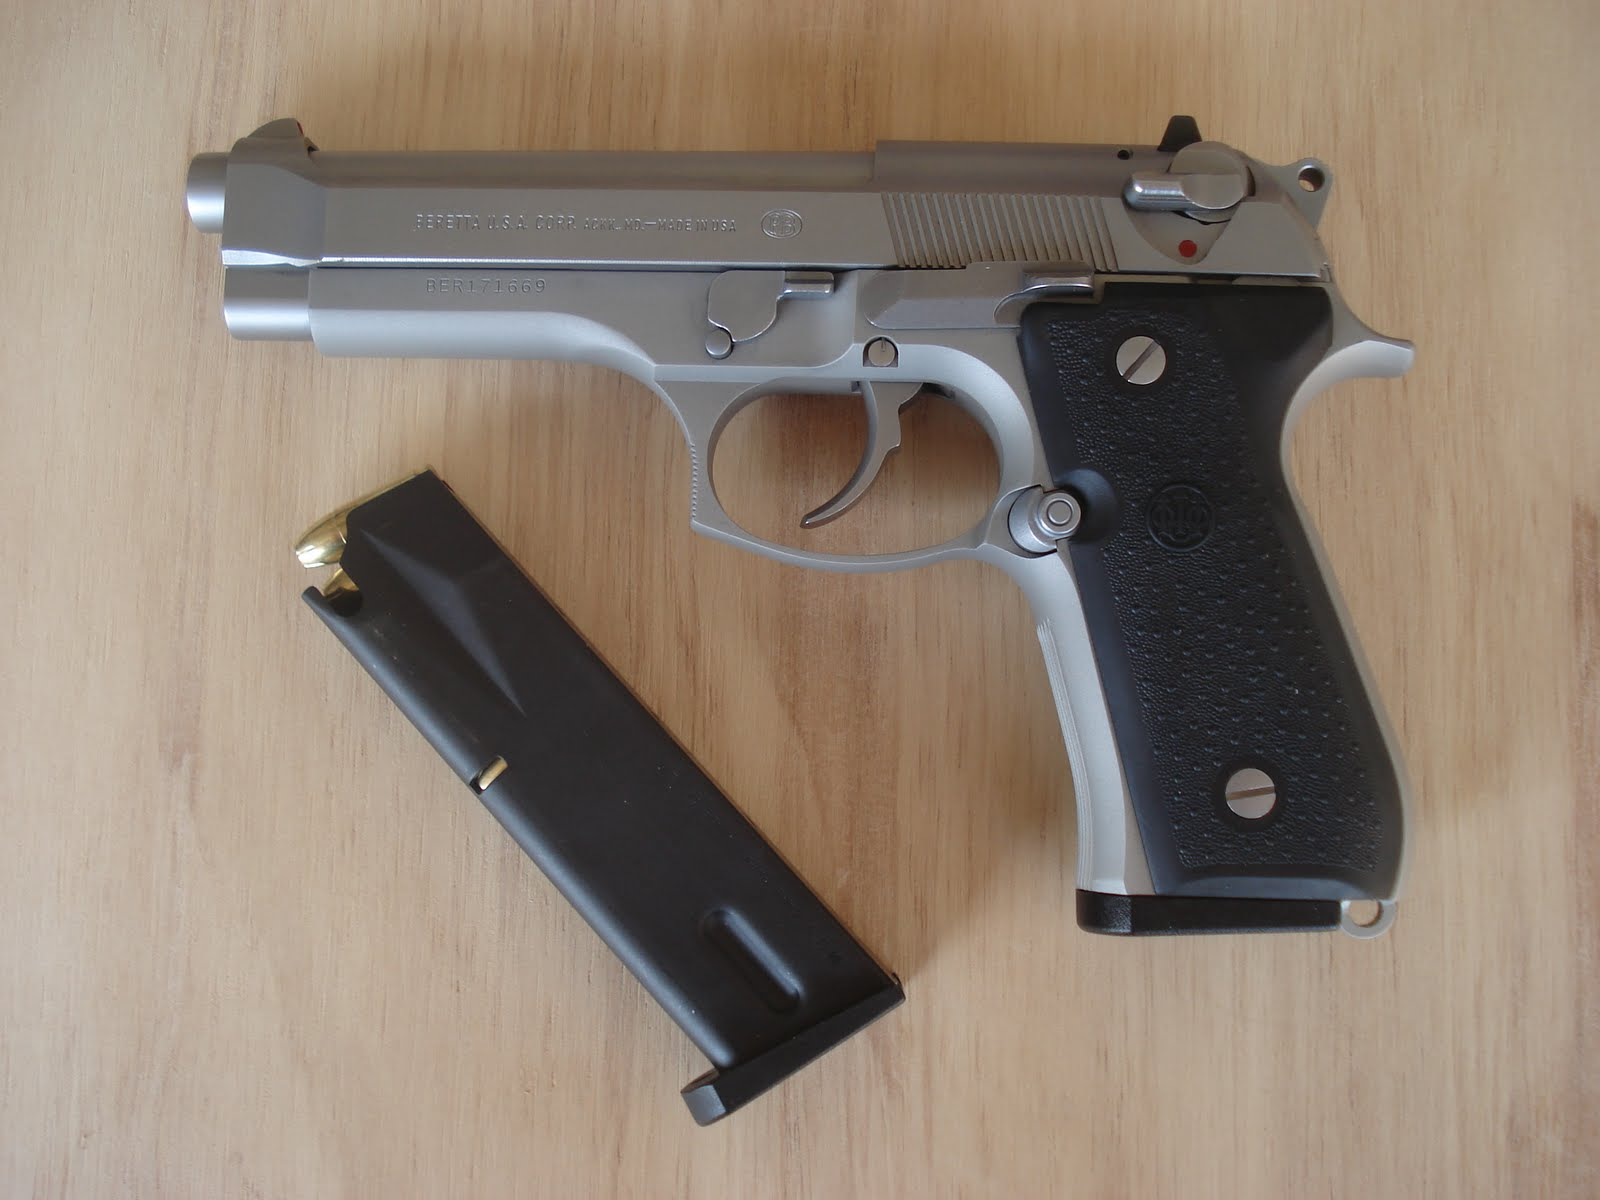 Where to Buy Firearms, Handguns, Gun, Weapon   Where to buy   All Types Of Guns Names And Pictures